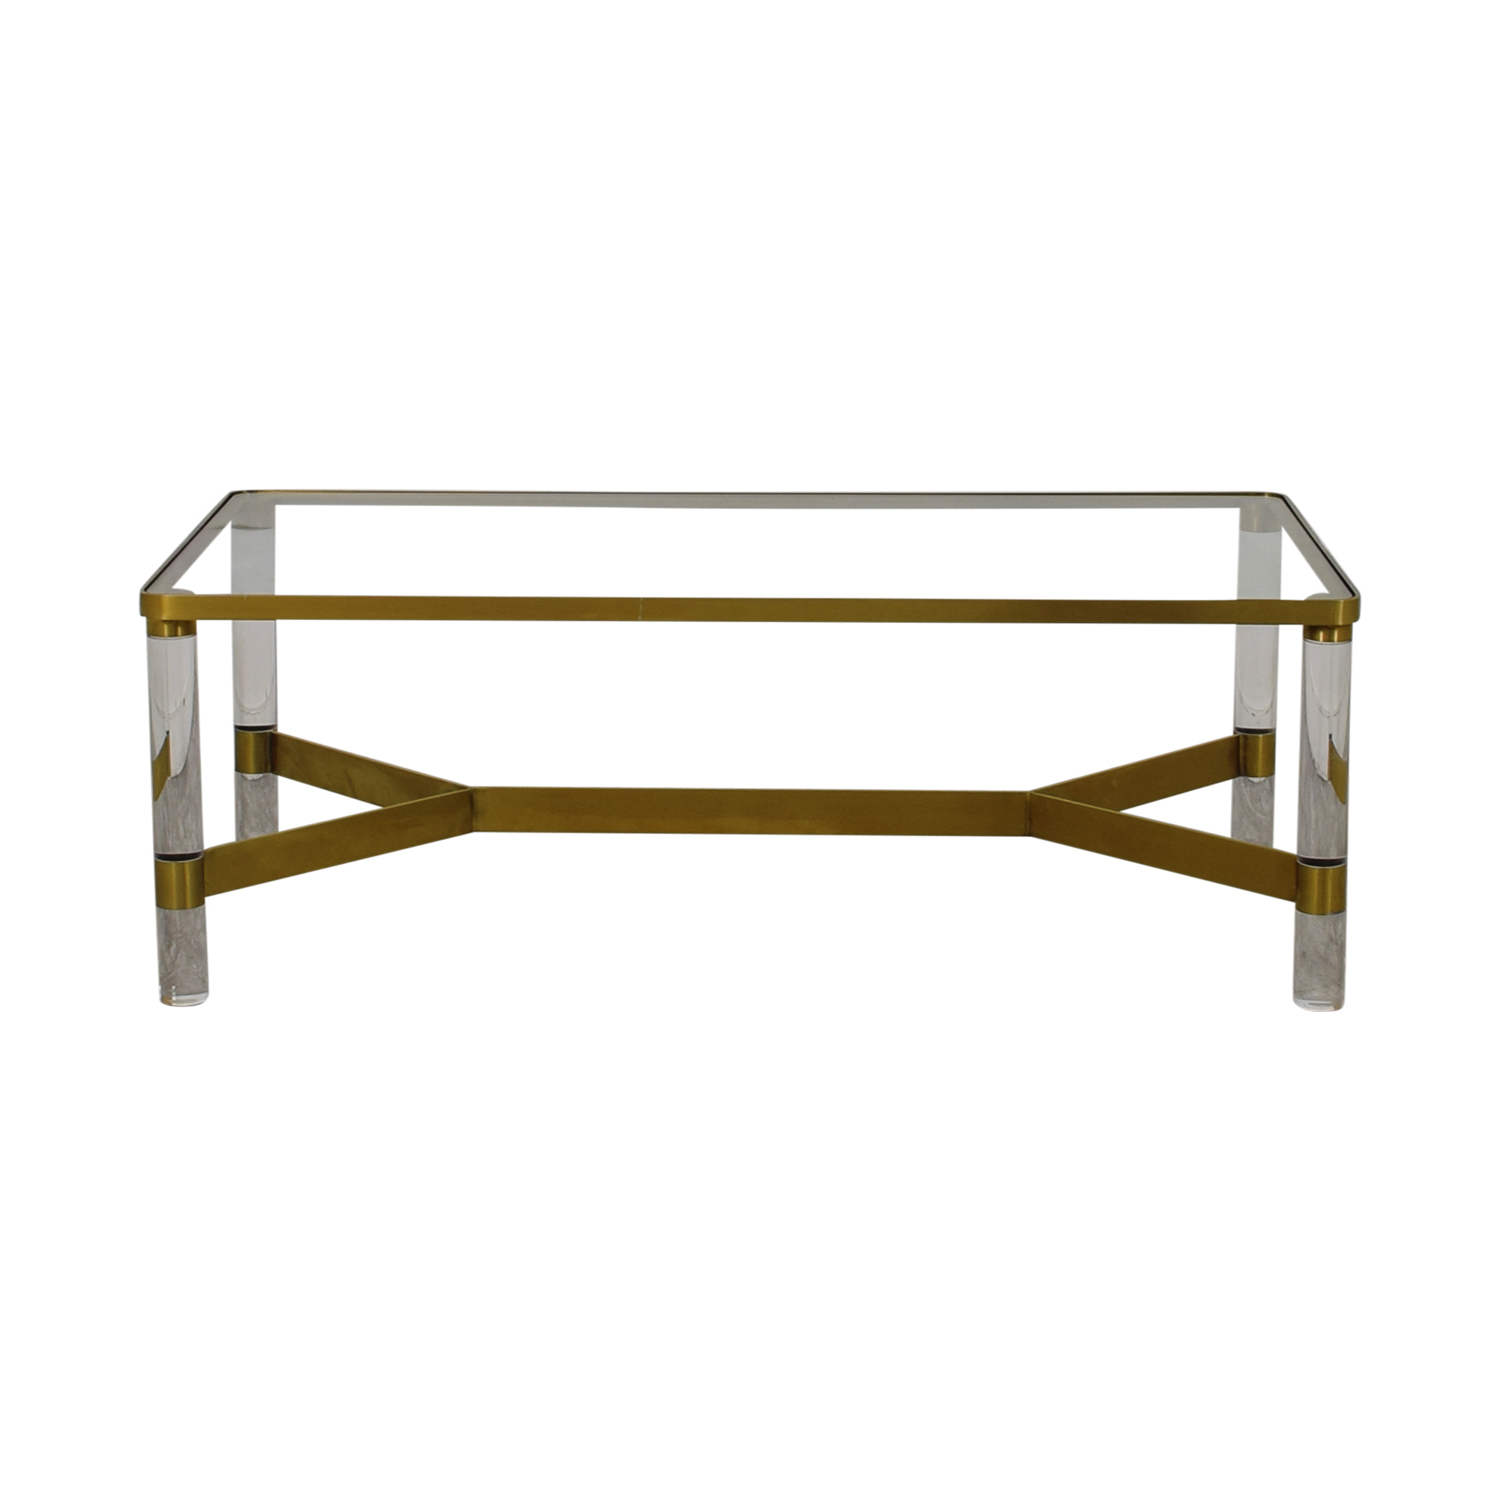 [%72% Off – Anthropologie Anthropologie Oscarine Glass Acrylic & Brass Within Well Known Acrylic & Brushed Brass Coffee Tables|Acrylic & Brushed Brass Coffee Tables With Regard To Newest 72% Off – Anthropologie Anthropologie Oscarine Glass Acrylic & Brass|Most Current Acrylic & Brushed Brass Coffee Tables Intended For 72% Off – Anthropologie Anthropologie Oscarine Glass Acrylic & Brass|Popular 72% Off – Anthropologie Anthropologie Oscarine Glass Acrylic & Brass Pertaining To Acrylic & Brushed Brass Coffee Tables%] (View 1 of 20)